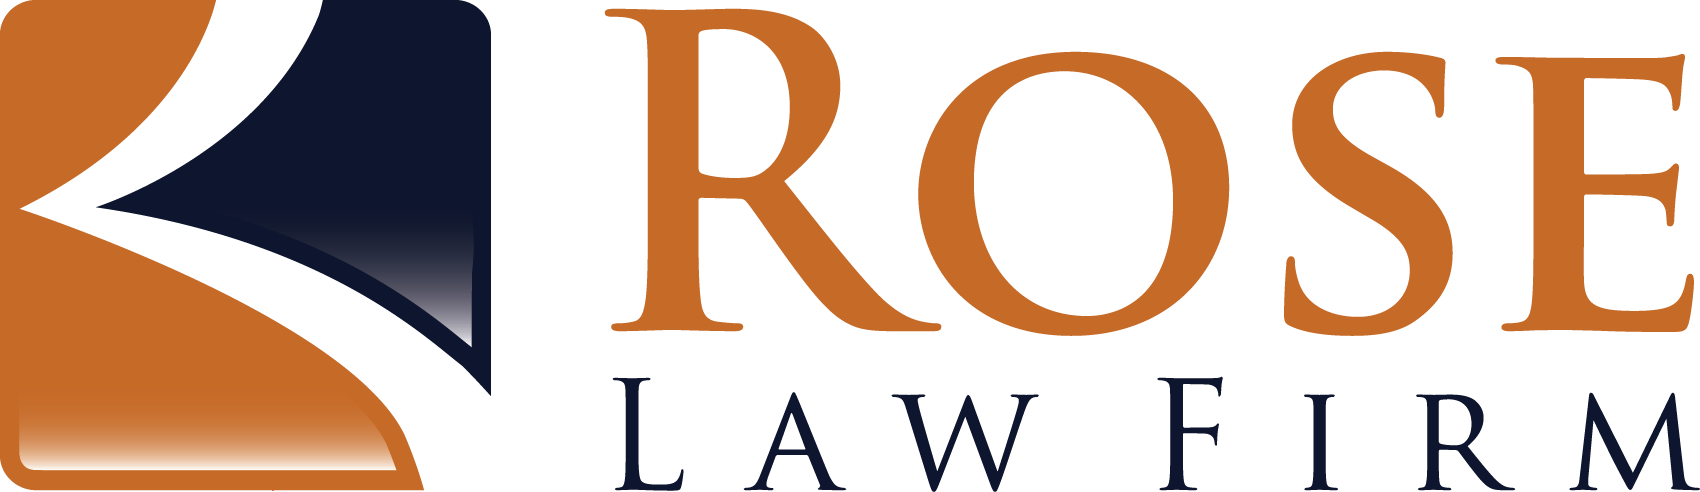 Rose Law Firm logo